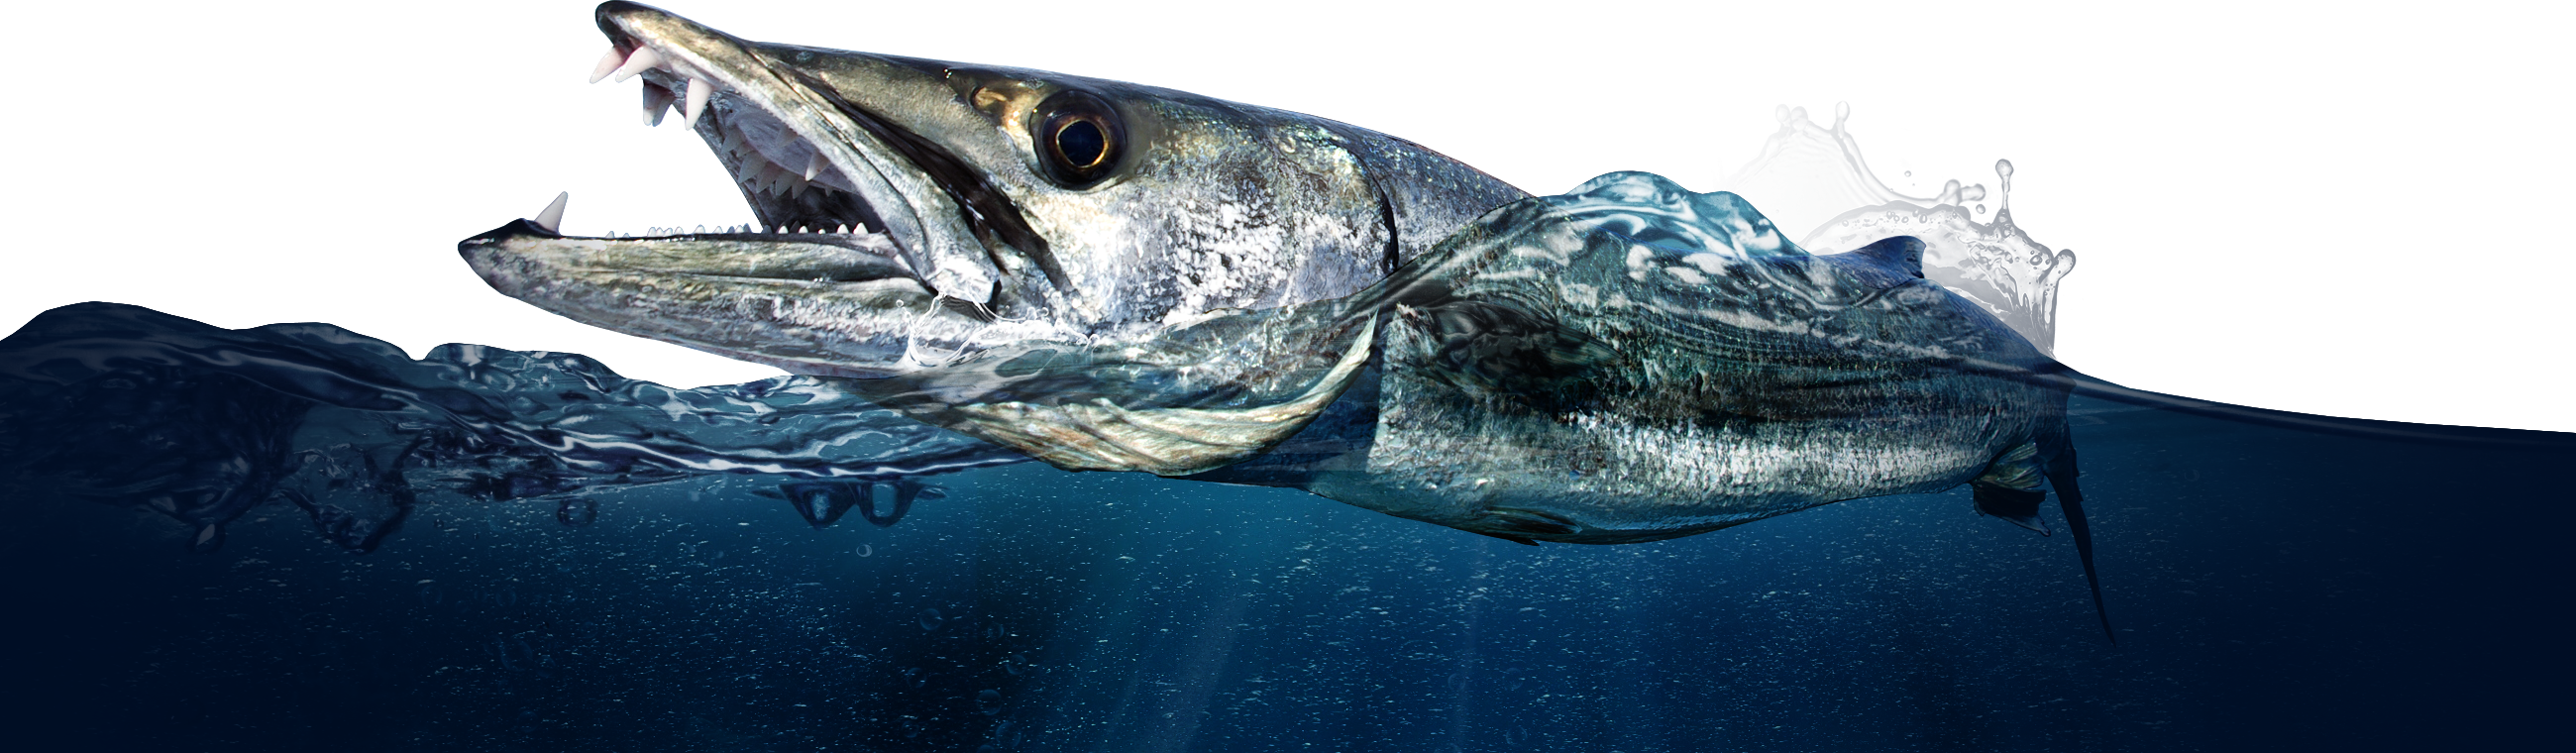 A Barracuda on the homepage of the Tackle Crafters Fish Apparel and equipment store